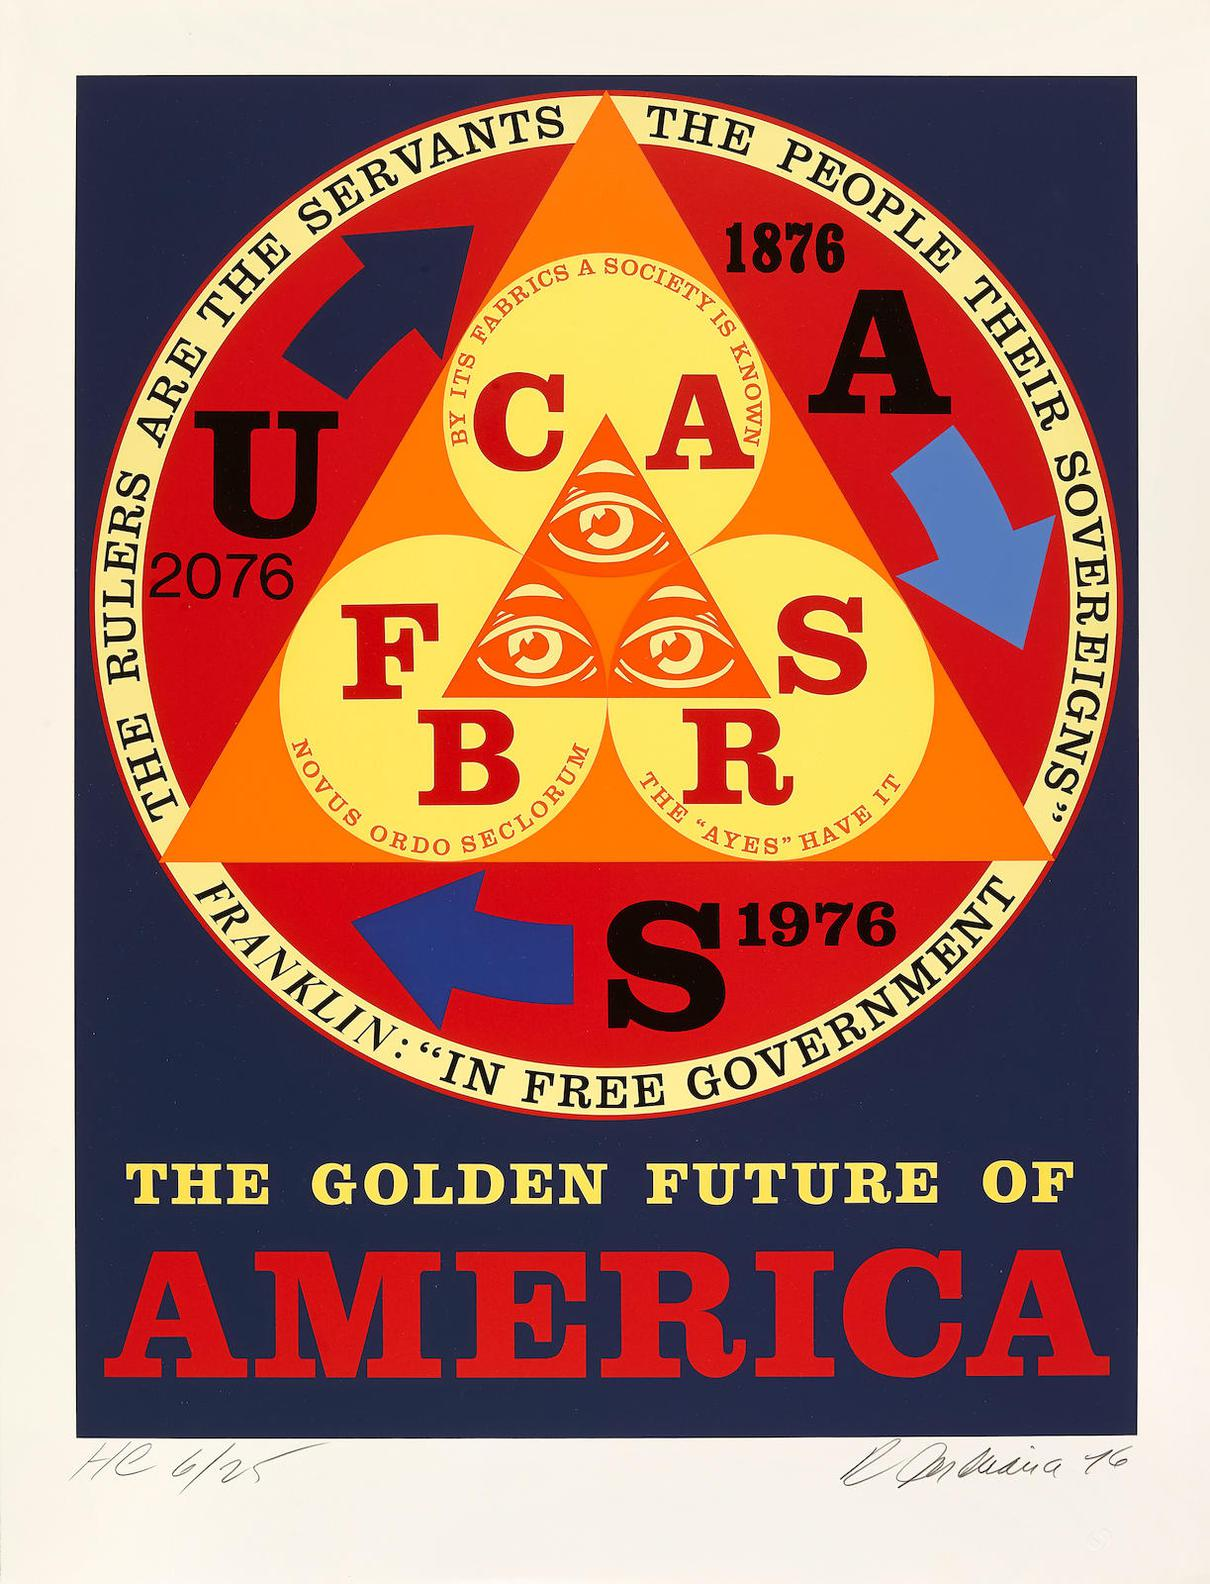 Robert Indiana-Golden Future Of America, From American Portrait 1776-1976 Bicentennial Portfolio (S. 92)-1976